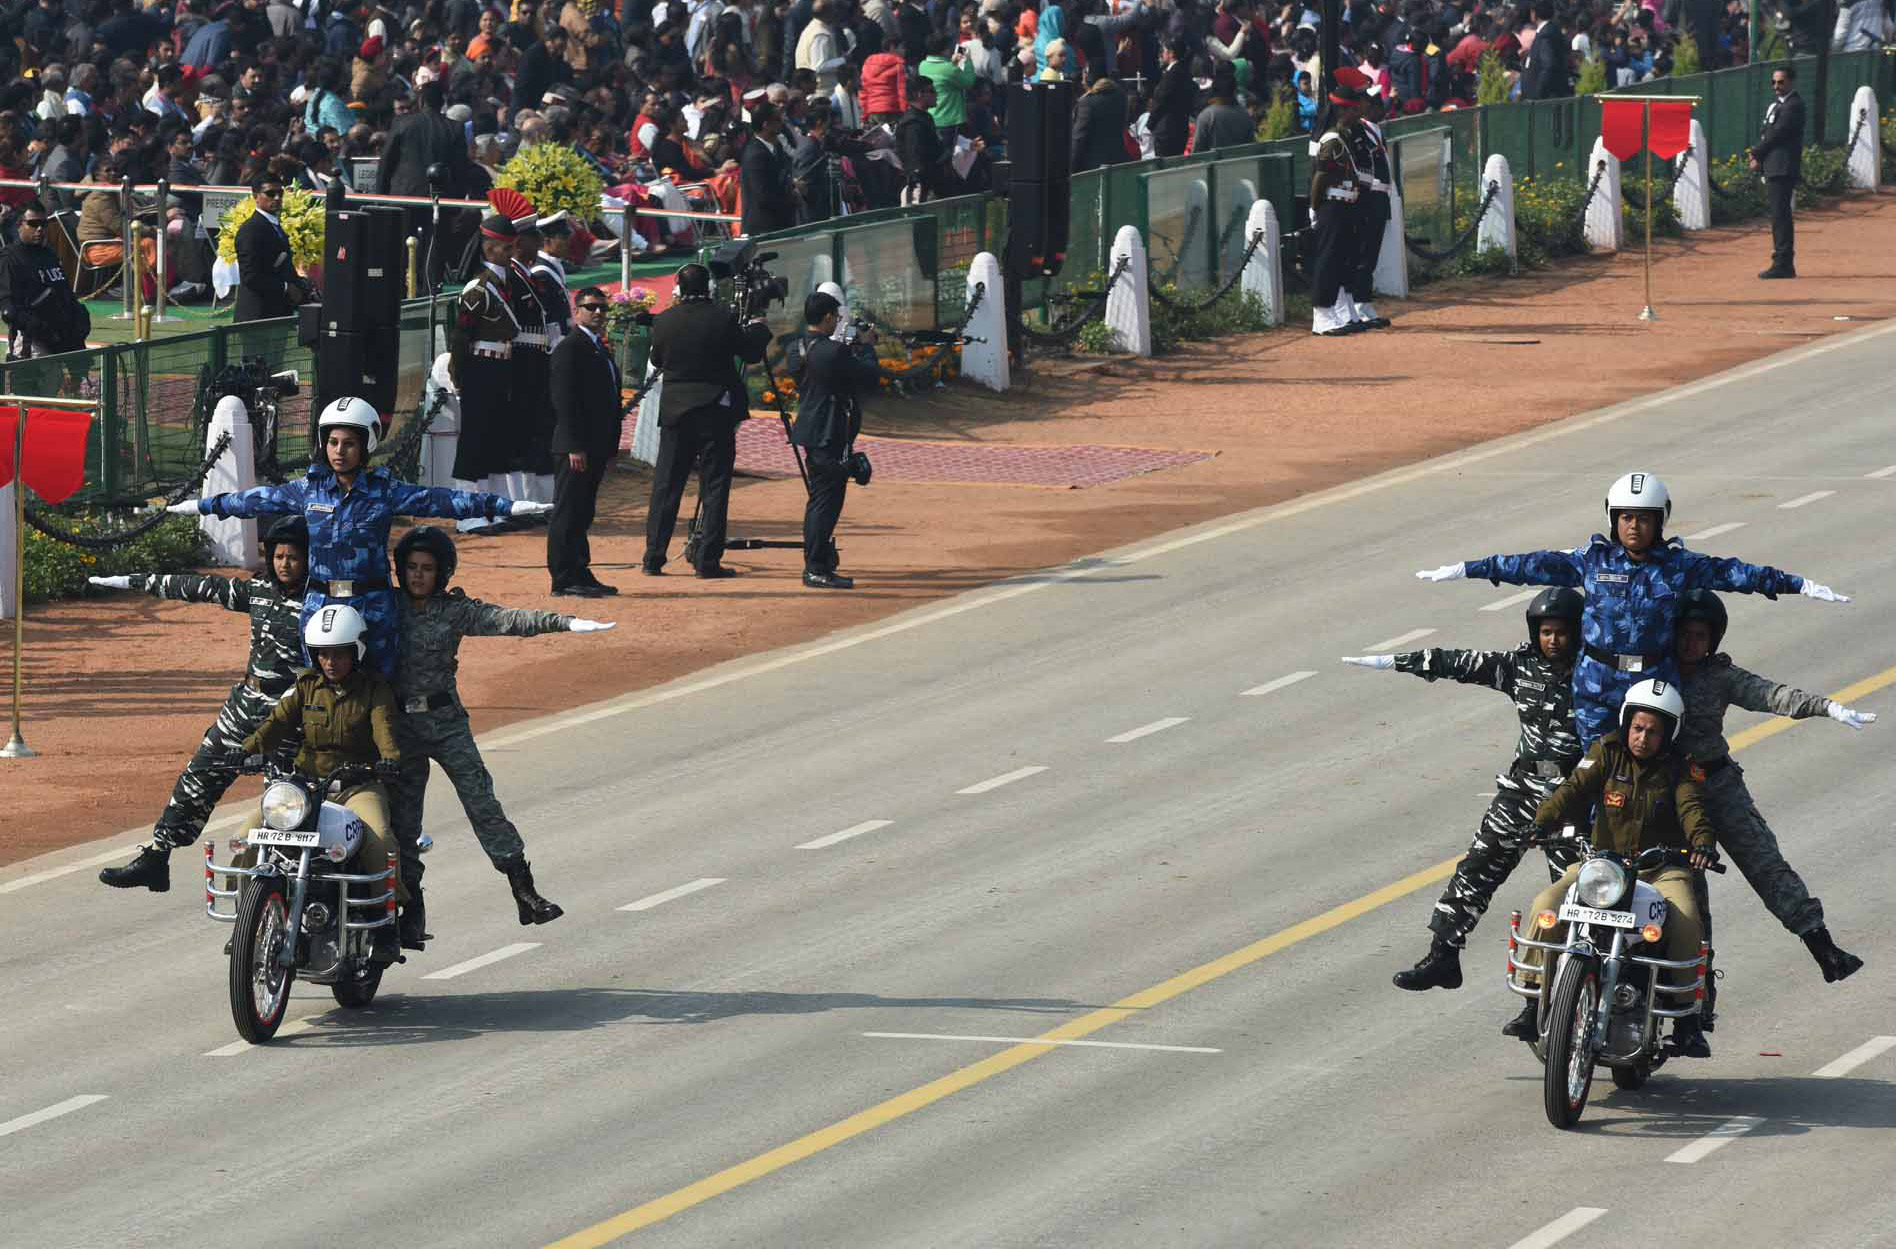 A contingent of CRPF women bikers - including an act by 21 of them on five motorcycles - made history performing daredevil stunts.